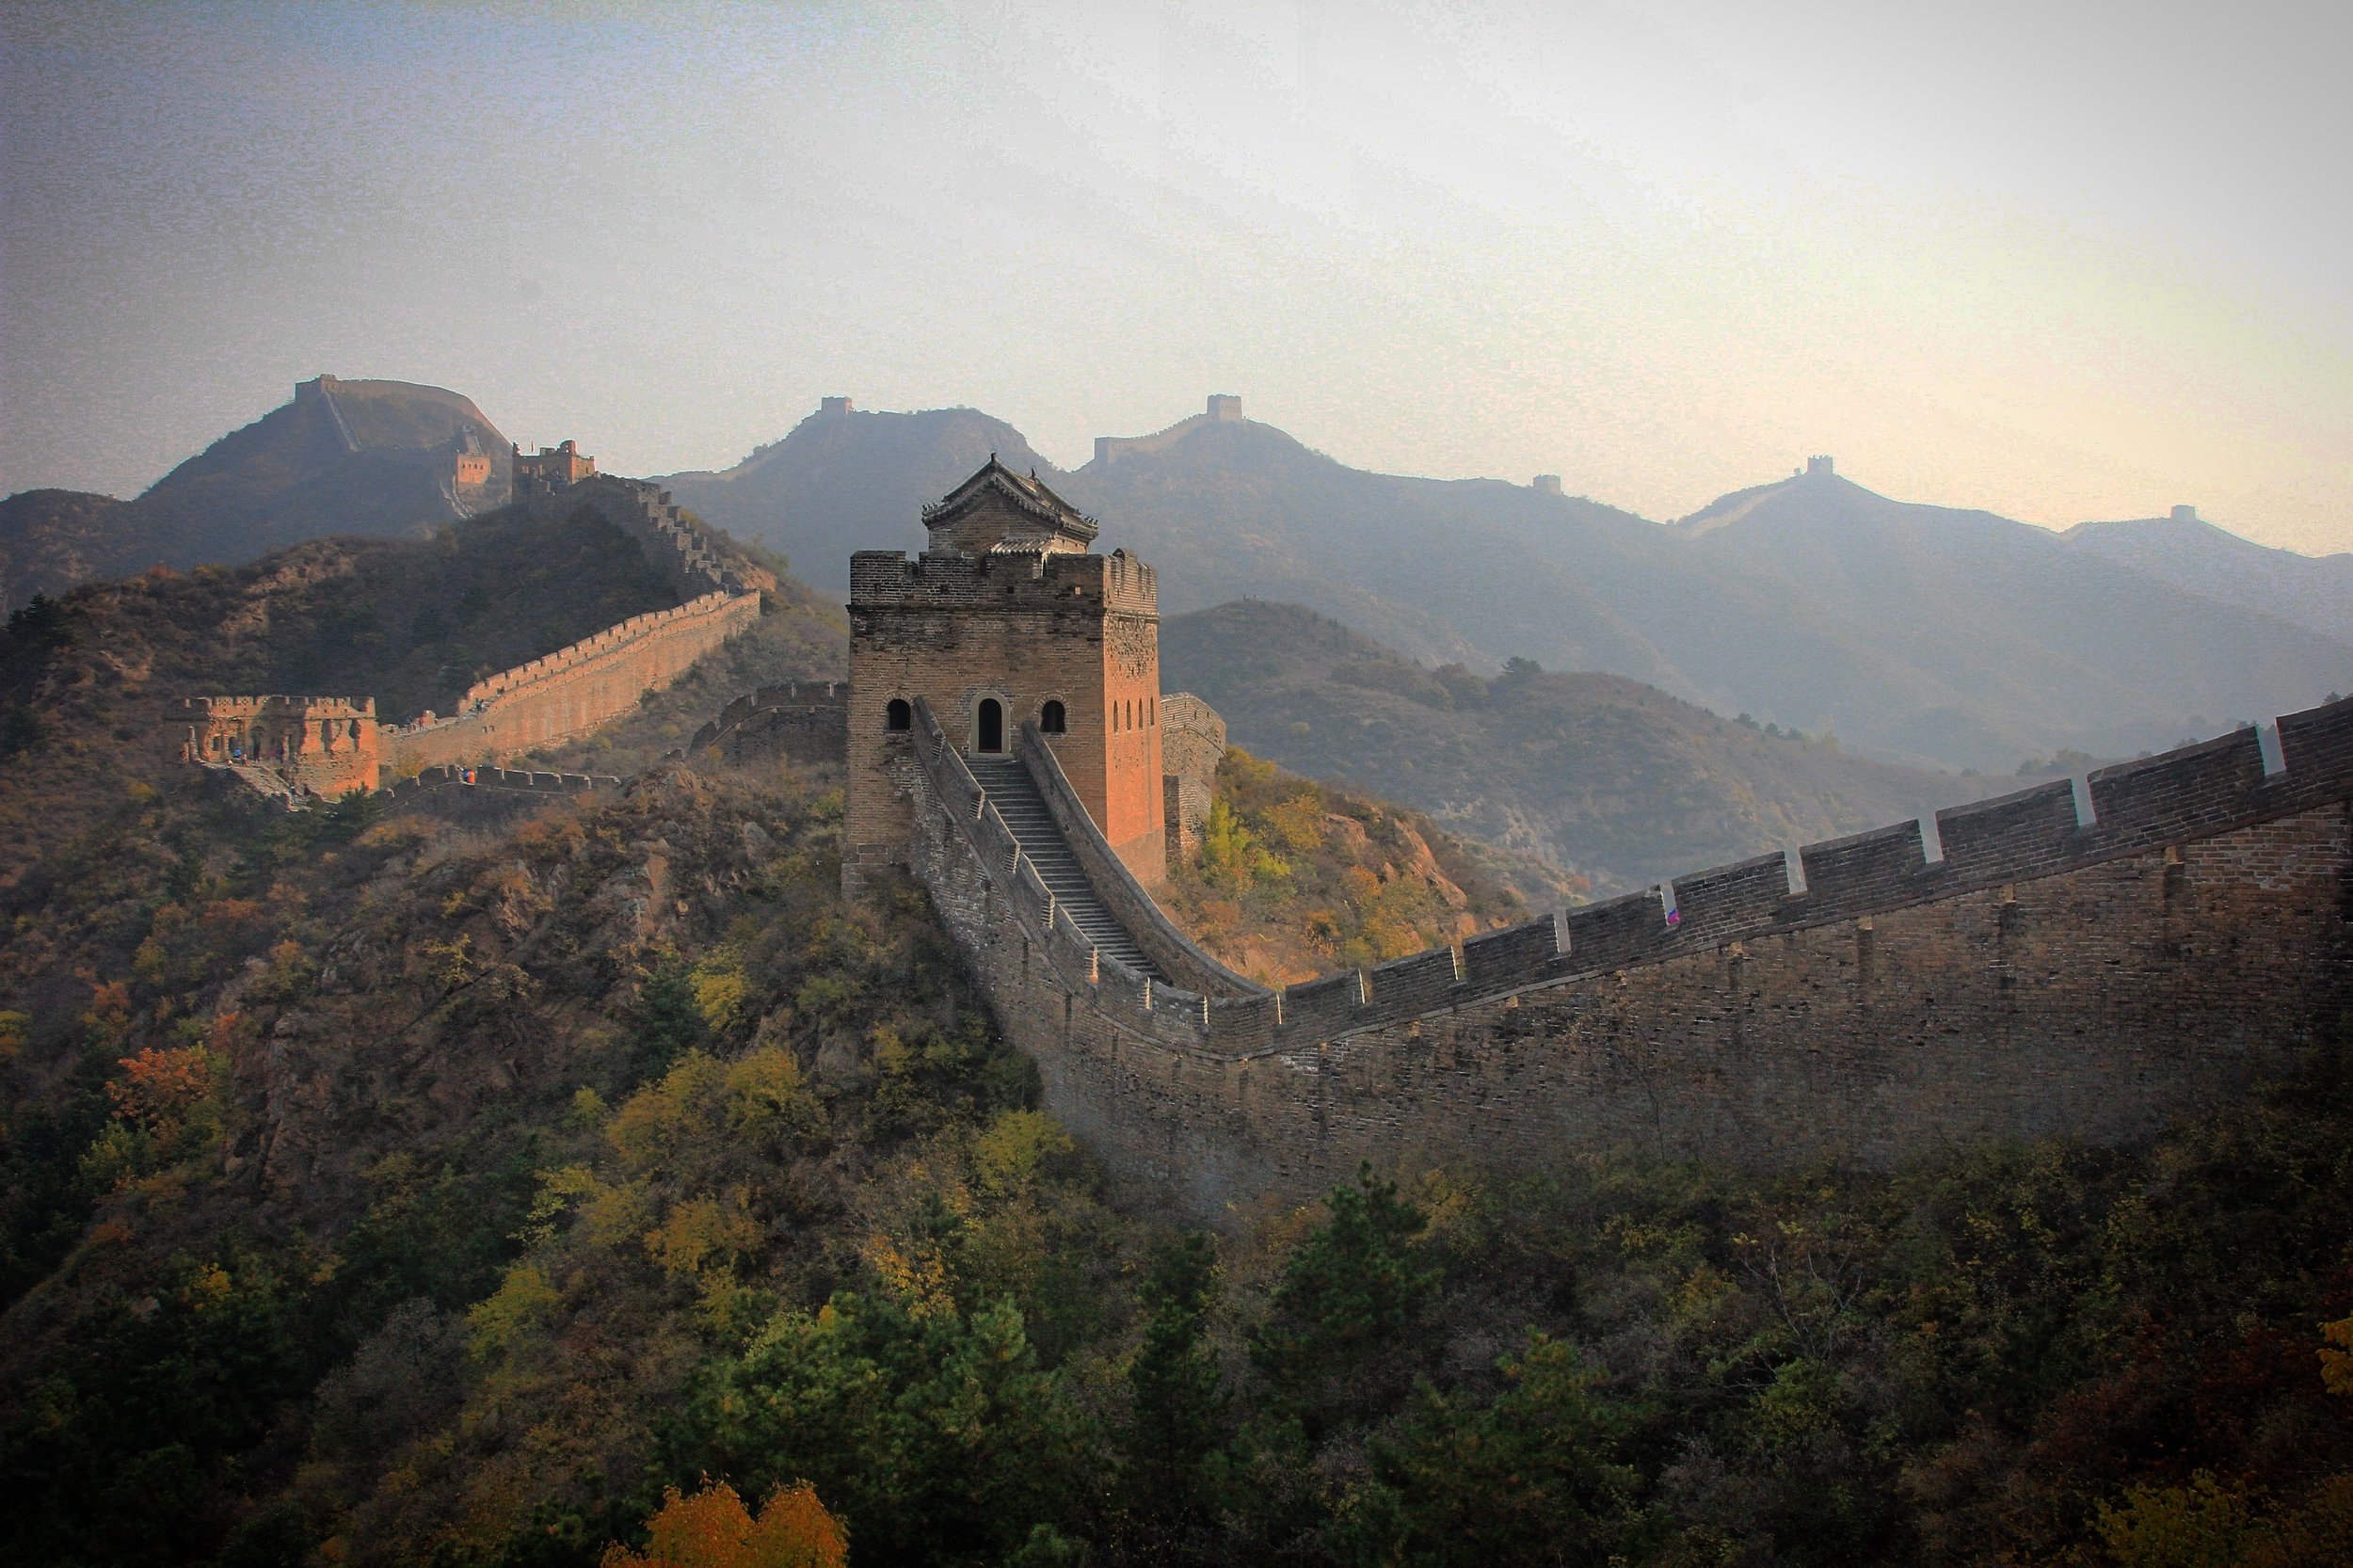 The Great Wall, Jinshanling, Beijing, China